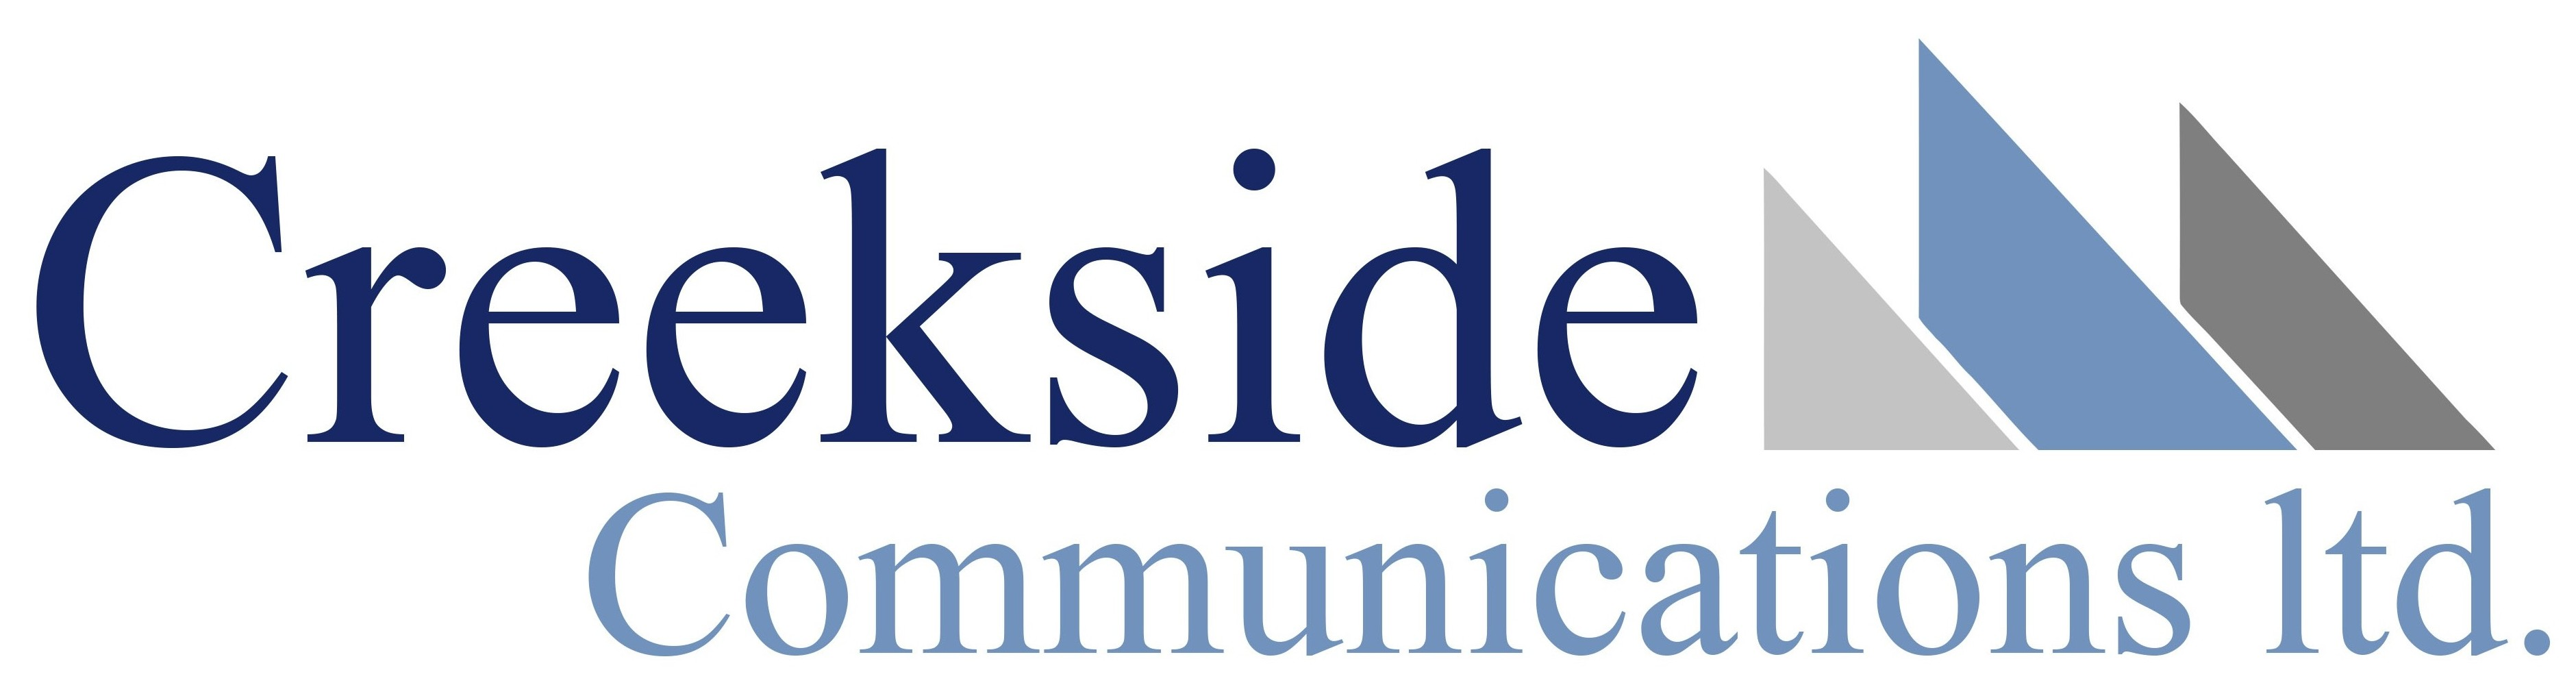 Creekside Communications ltd.